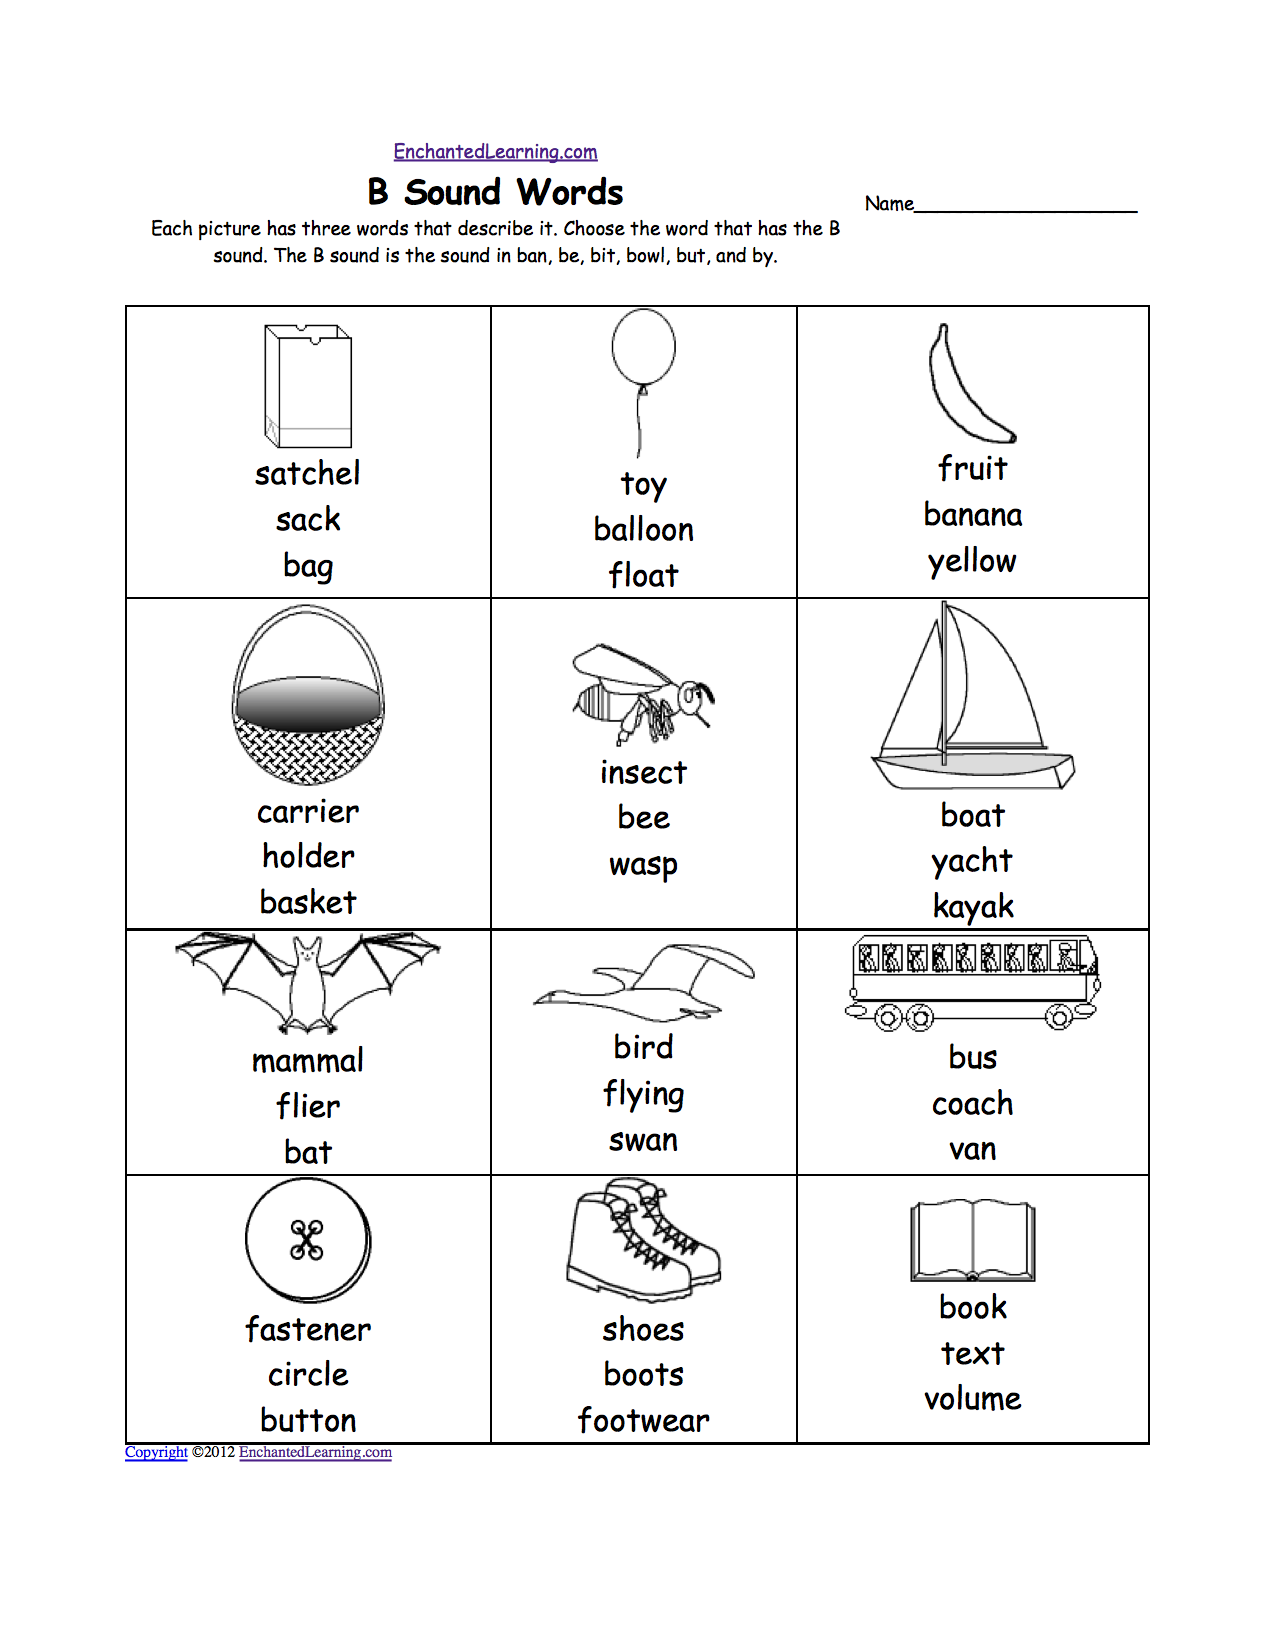 Weirdmailus  Winsome Phonics Worksheets Multiple Choice Worksheets To Print  With Lovable Quotbquot Sound Phonics Worksheet Multiple Choice Each Picture Has Three Words That Describe It Choose The Word That Has A Quotbquot Sound The Quotbquot Sound Is The Sound  With Cute Beginner Band Worksheets Also Marcia Tate Worksheets Don T Grow Dendrites In Addition Mixed Number To Decimal Worksheet And Parts Of Speech Worksheets Th Grade As Well As Cinquain Poem Worksheet Additionally Genre Worksheets For Th Grade From Enchantedlearningcom With Weirdmailus  Lovable Phonics Worksheets Multiple Choice Worksheets To Print  With Cute Quotbquot Sound Phonics Worksheet Multiple Choice Each Picture Has Three Words That Describe It Choose The Word That Has A Quotbquot Sound The Quotbquot Sound Is The Sound  And Winsome Beginner Band Worksheets Also Marcia Tate Worksheets Don T Grow Dendrites In Addition Mixed Number To Decimal Worksheet From Enchantedlearningcom